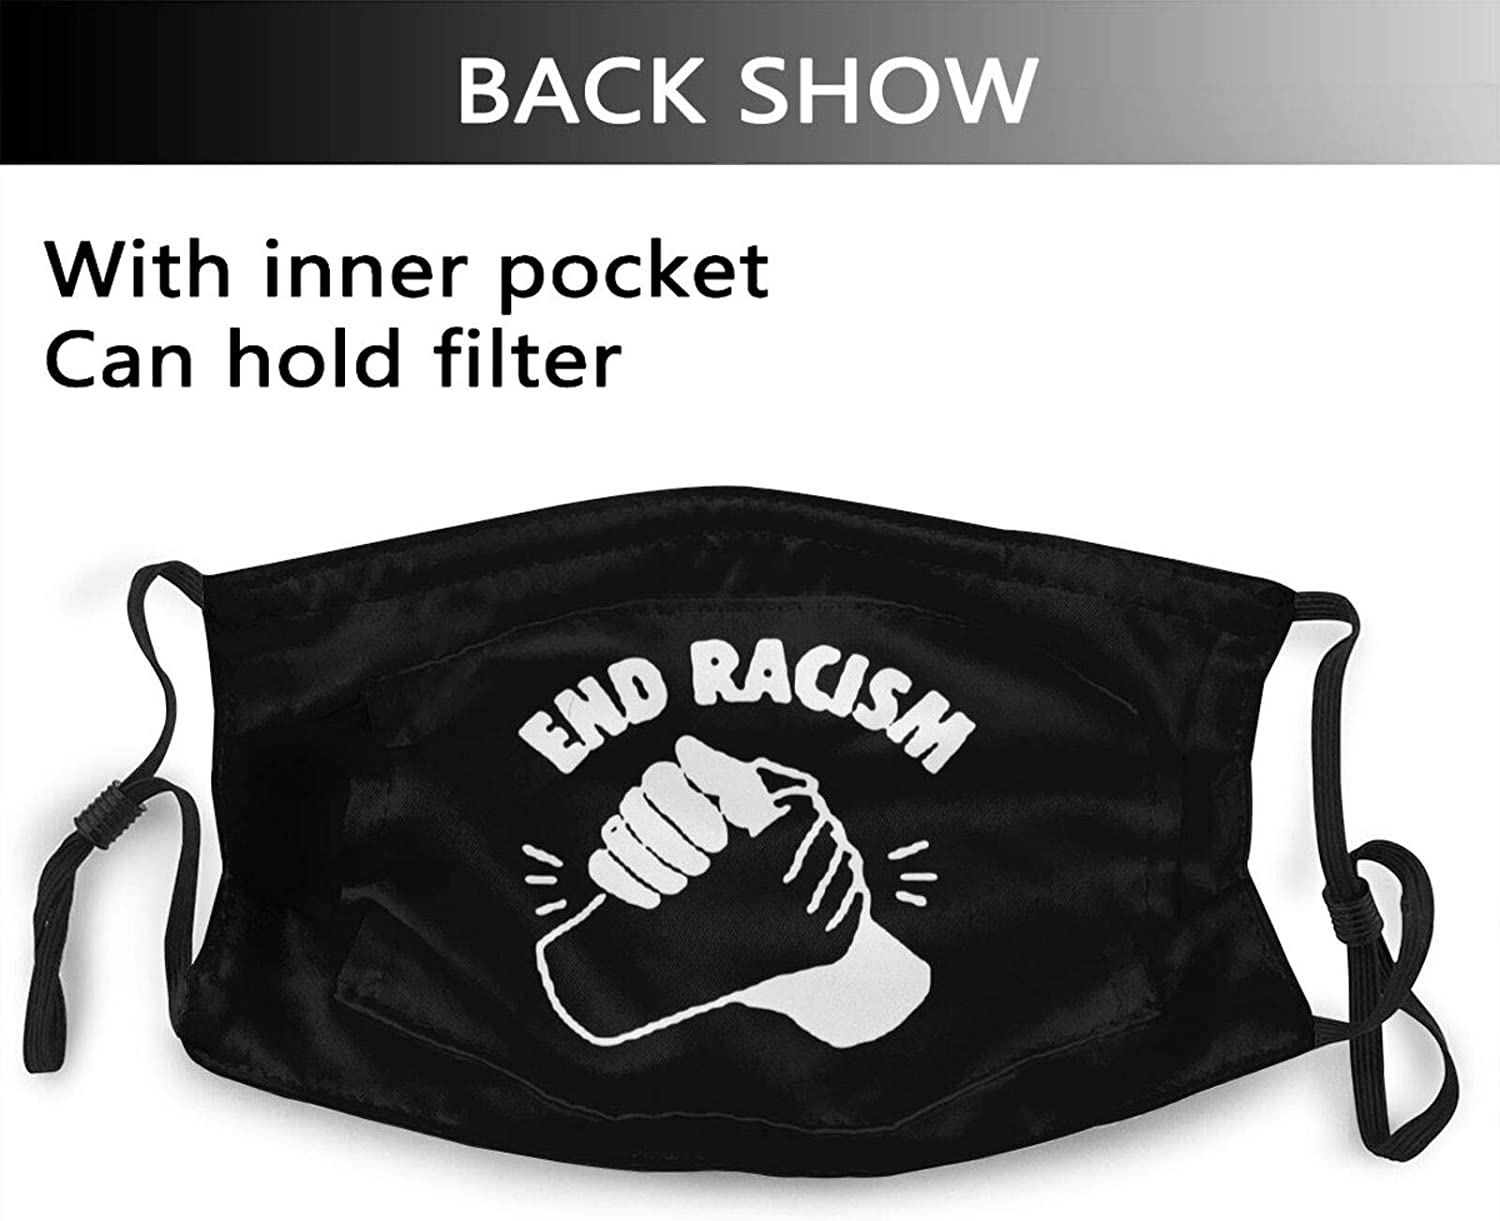 End Racism Black Face Mask Bandanas Reusable Dustproof Abjustable Sport Mask with Filters Washable Balaclava for Adults